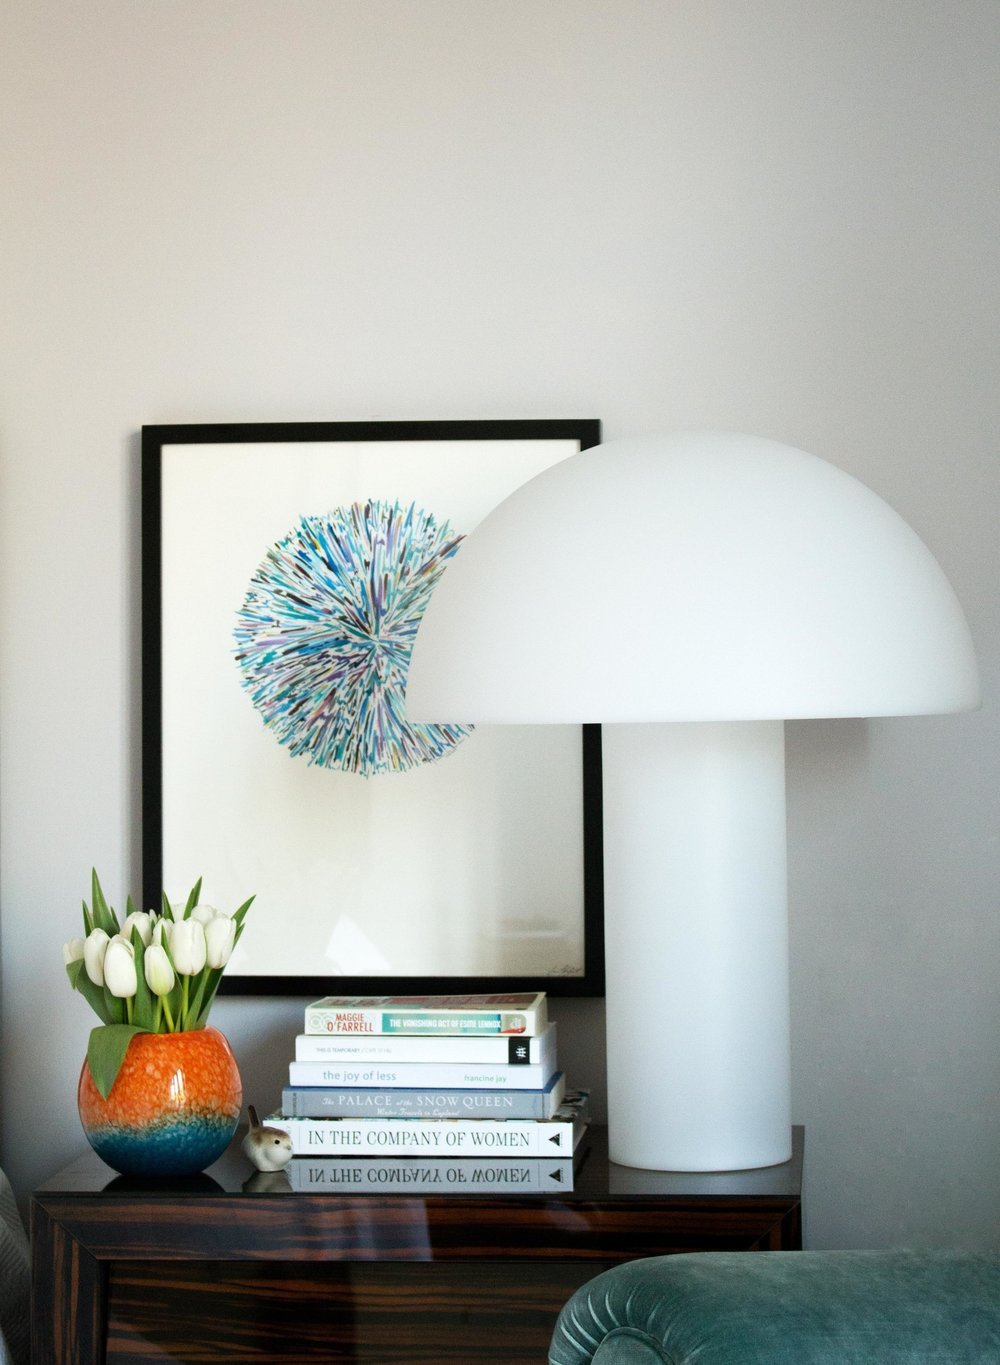 The Armand White Polypropylene Lamp by Habitat brings-up-an-updated-look-to-a-classic-design---Interior-Design-by-Phoebe-Oldrey